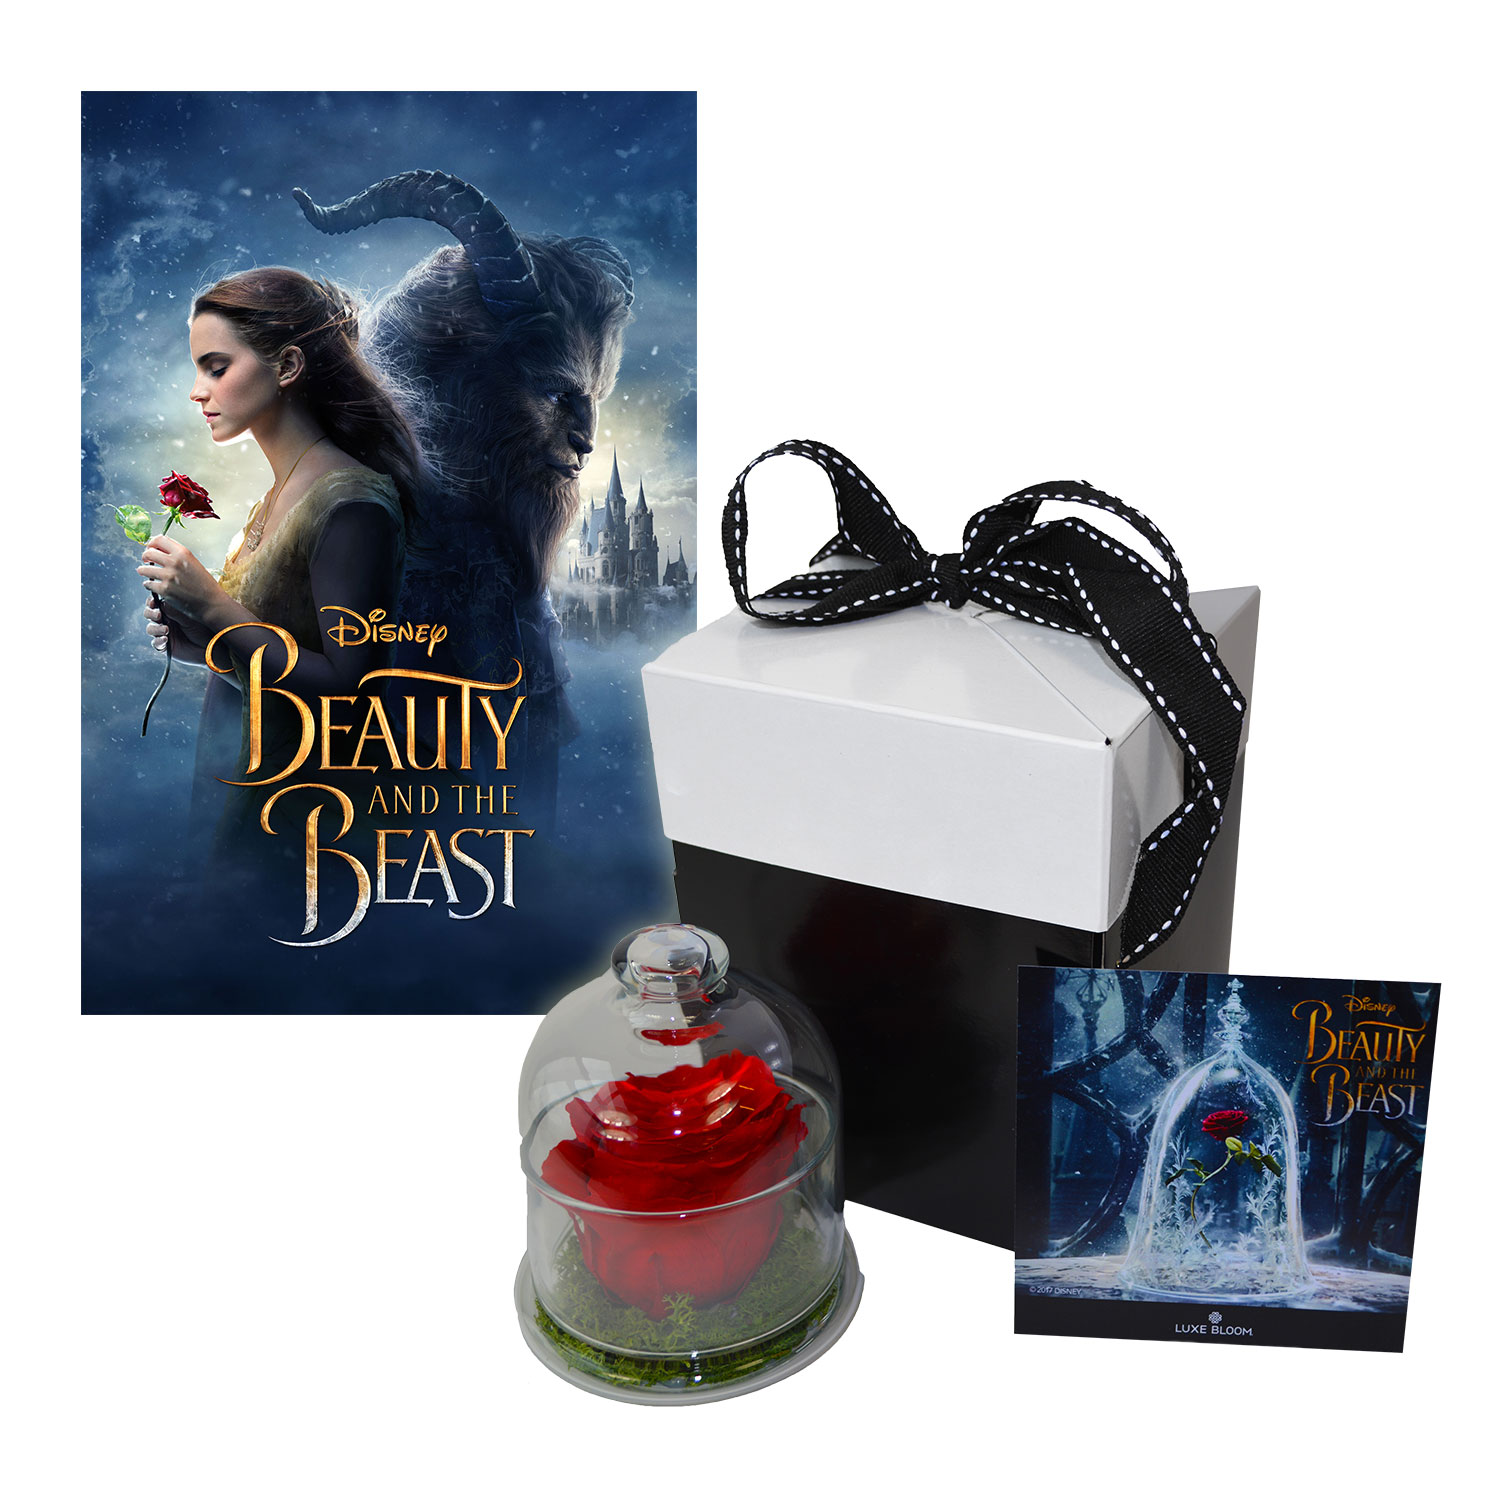 Beauty and the Beast Movie Gift Set - Enchanted Rose & Beauty and the Beast Digital Movie